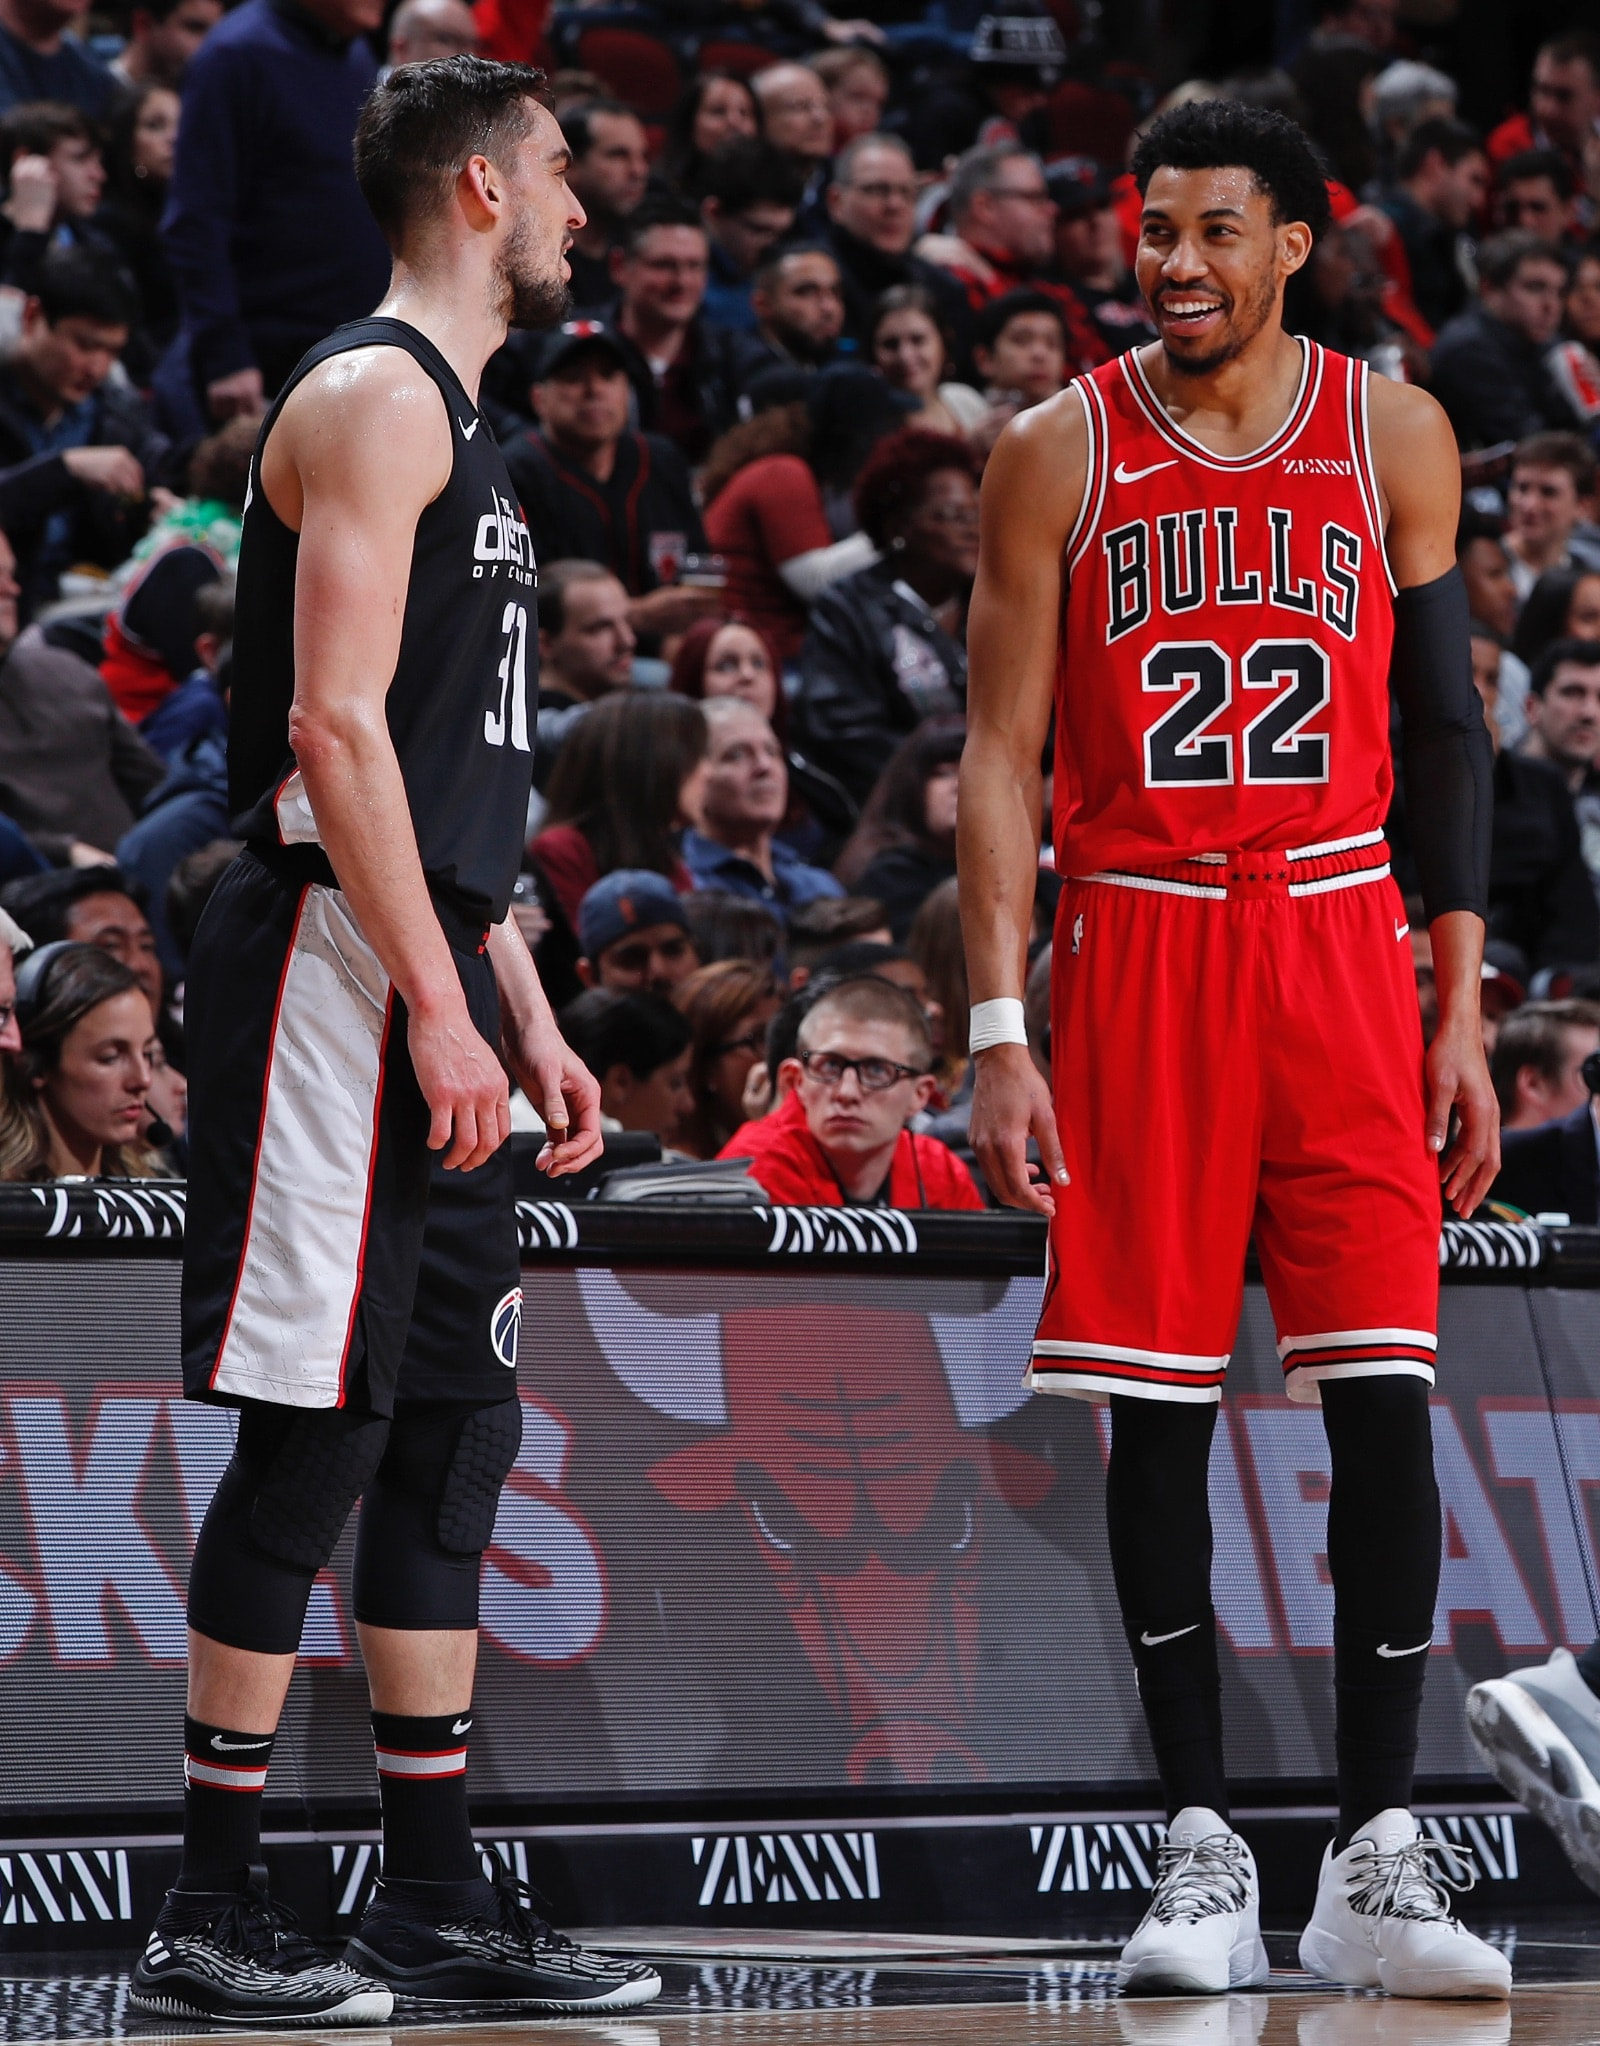 Tomas Satoransky #31 of the Washington Wizards and Otto Porter Jr. #22 of the Chicago Bulls speak during the game on February 9, 2019 at United Center in Chicago, Illinois.